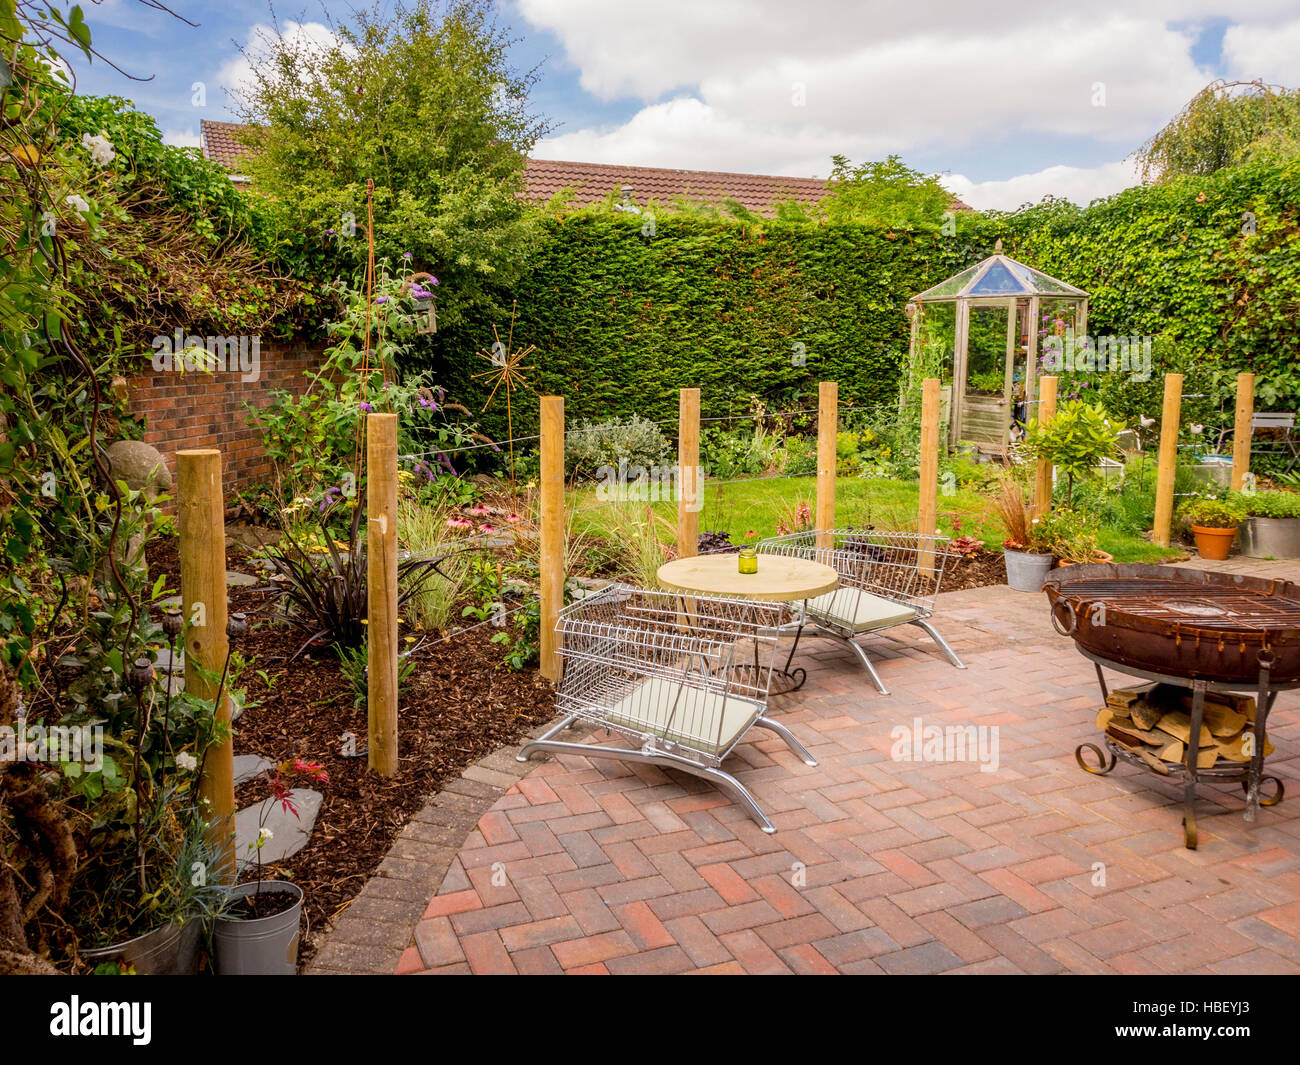 Garden Areas Divided Using Wooden Stakes To Create Outdoor Rooms In Modern  Contemporary Design   Stock